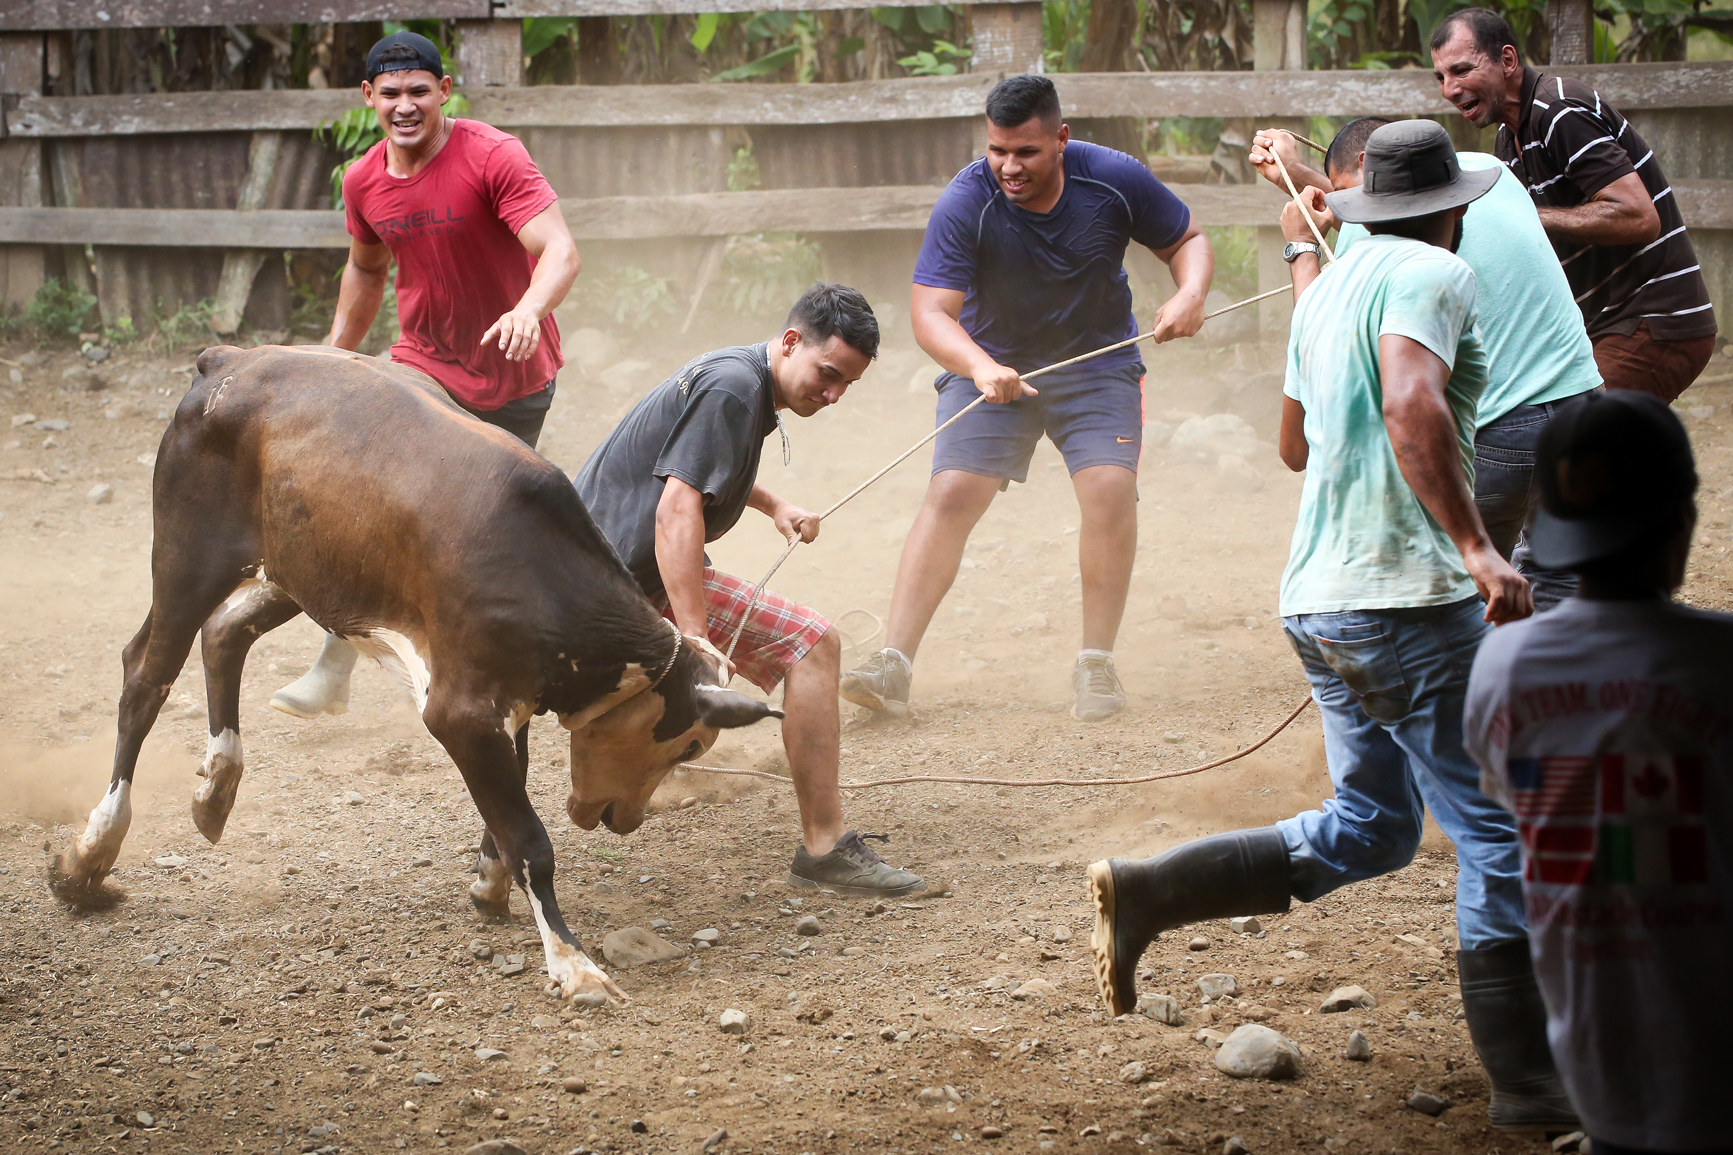 A group of Ticos battle to bring a bull under control.